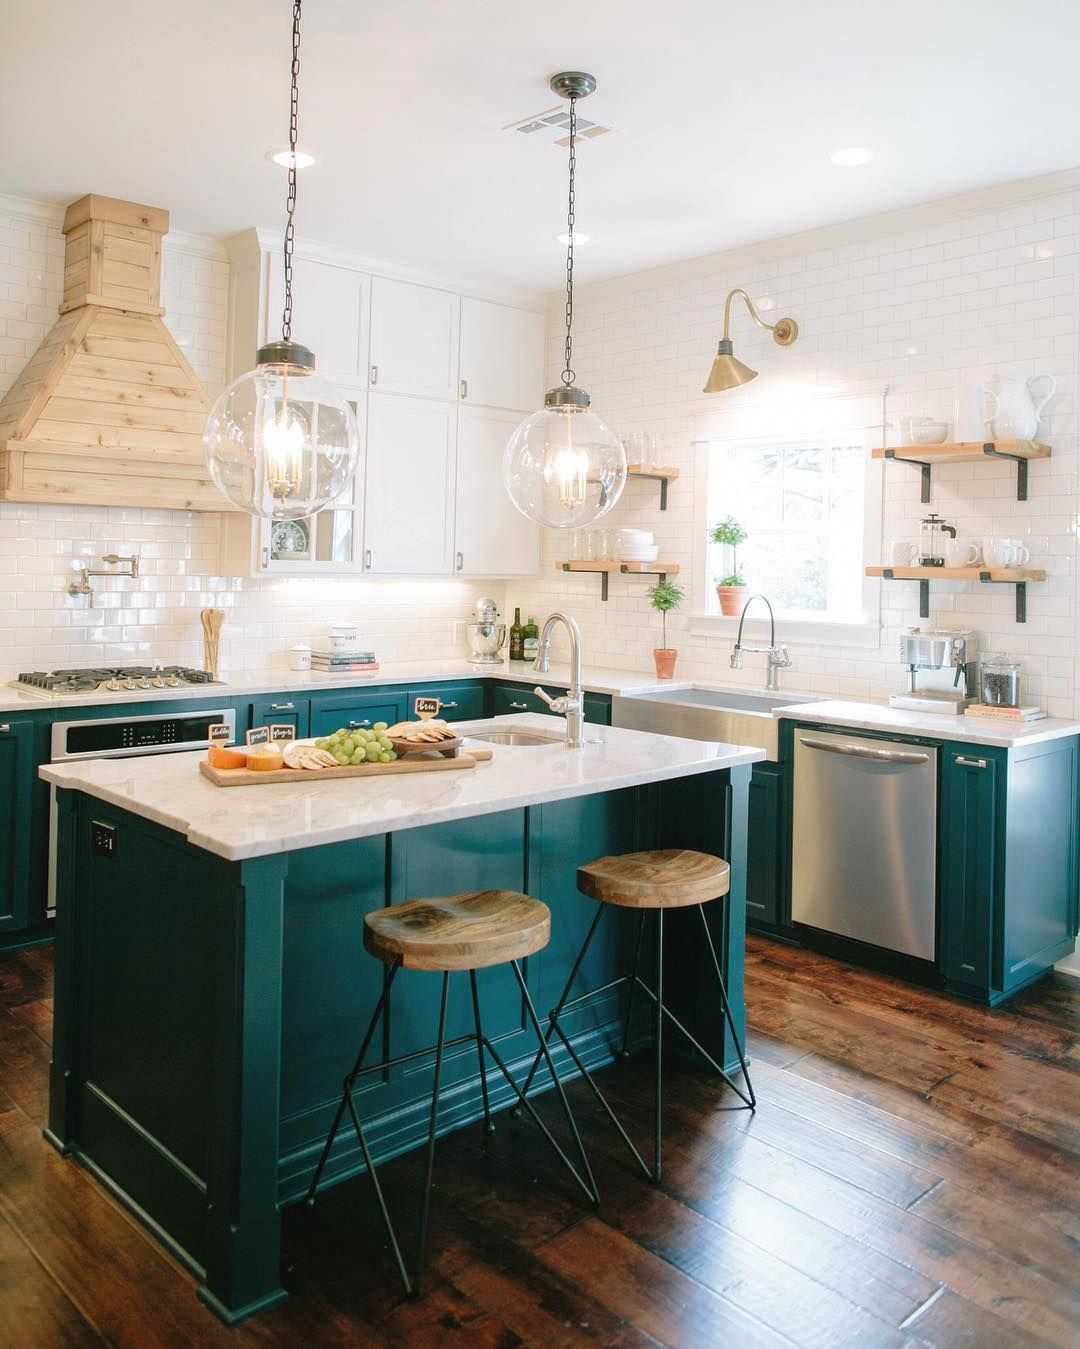 Designers Are Loving This Color For Kitchen Cabinets Right Now Dark Teal Cabinets Diykitchenisland Kitchen Remodel Home Kitchens Teal Kitchen Cabinets